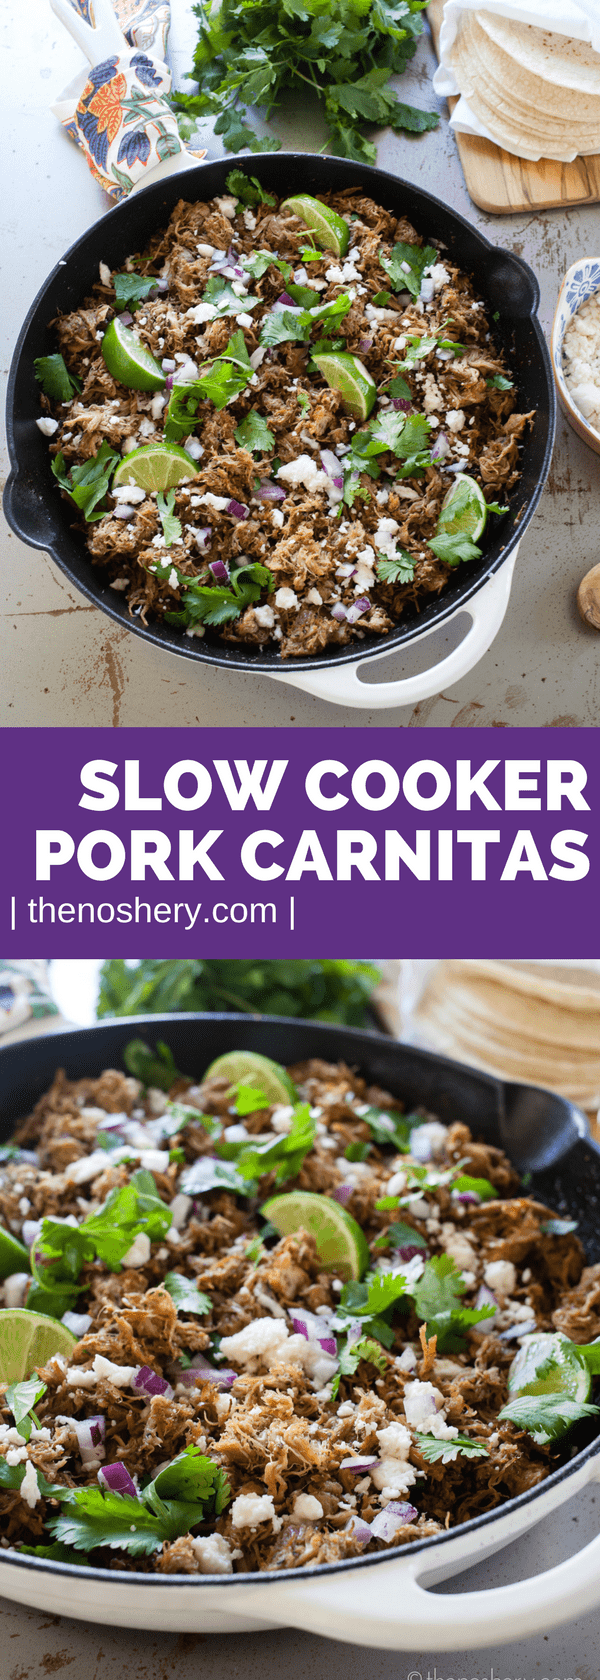 Slow Cooker Pork Carnitas | Make Taco Night Easy with the Slow Cooker